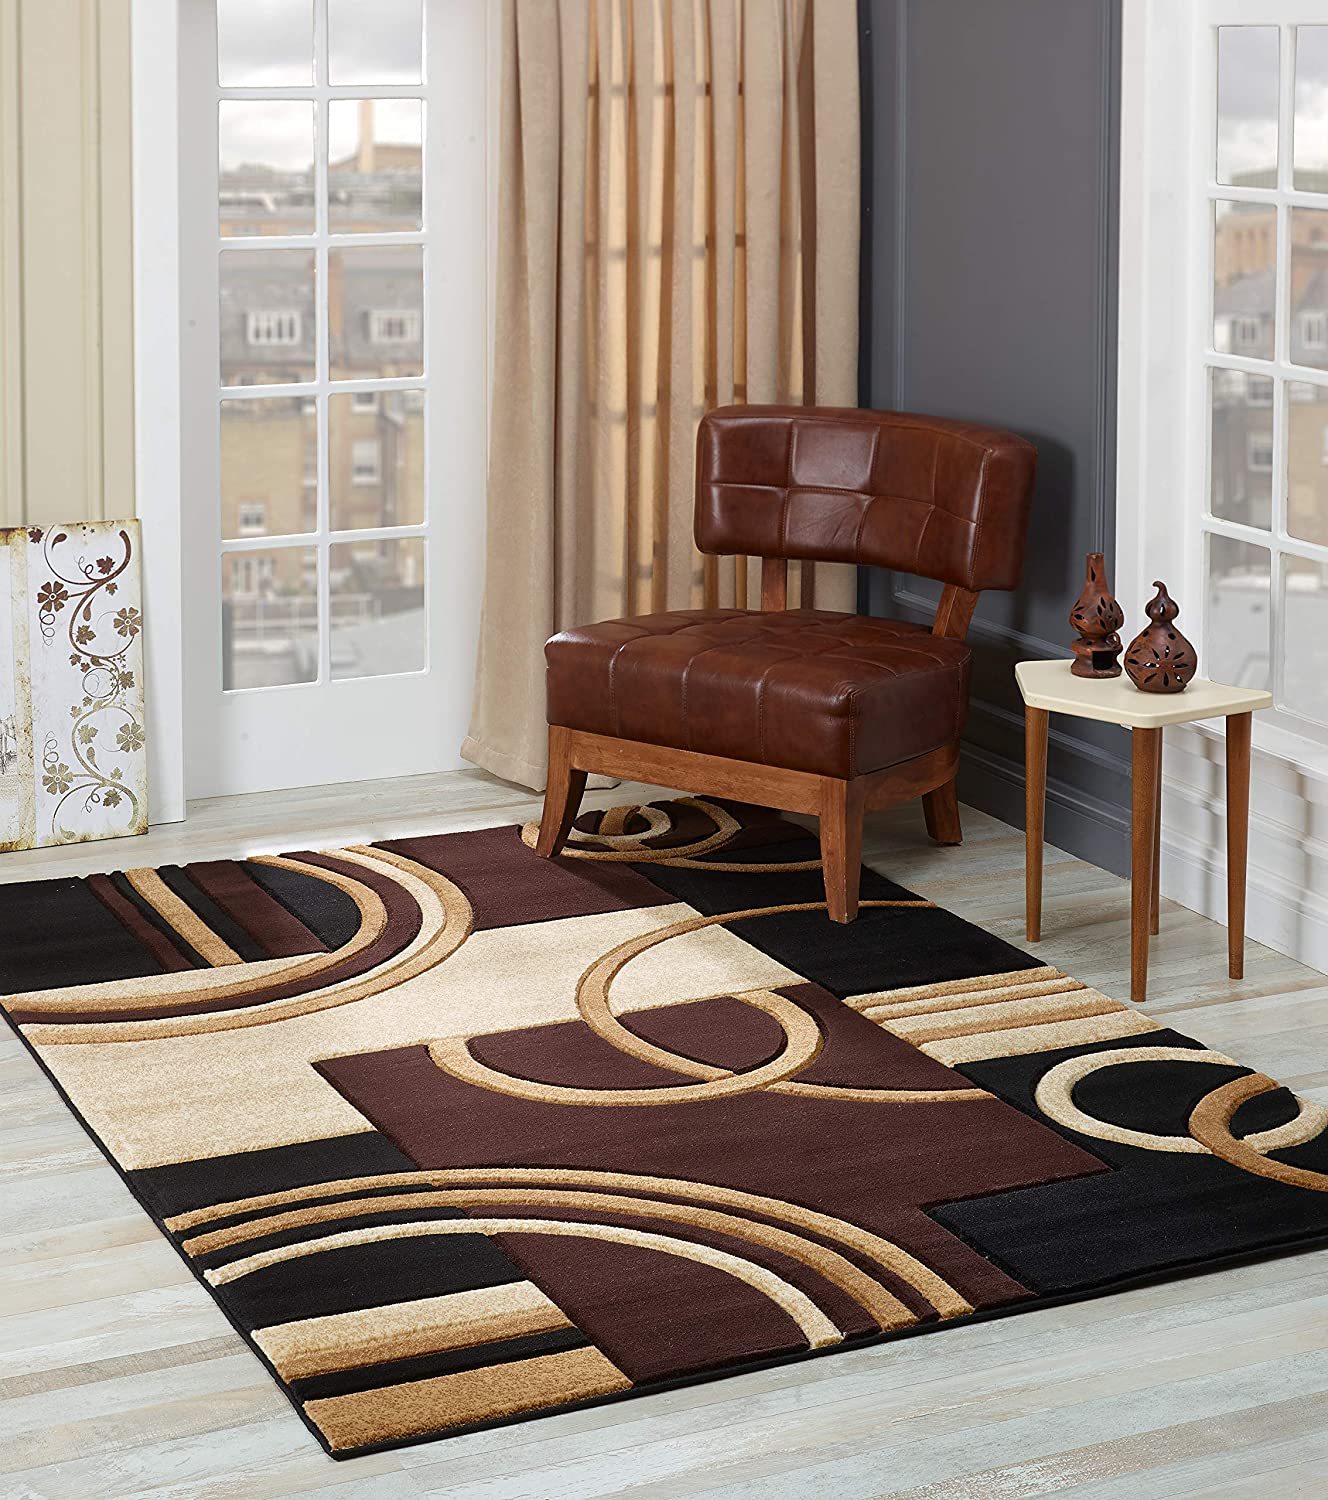 GLORY RUGS Area Rug Modern 8x10 Brown Soft Hand Carved Contemporary Floor Carpet with Premium Fluffy Texture for Indoor Living Dining Room and Bedroom Area